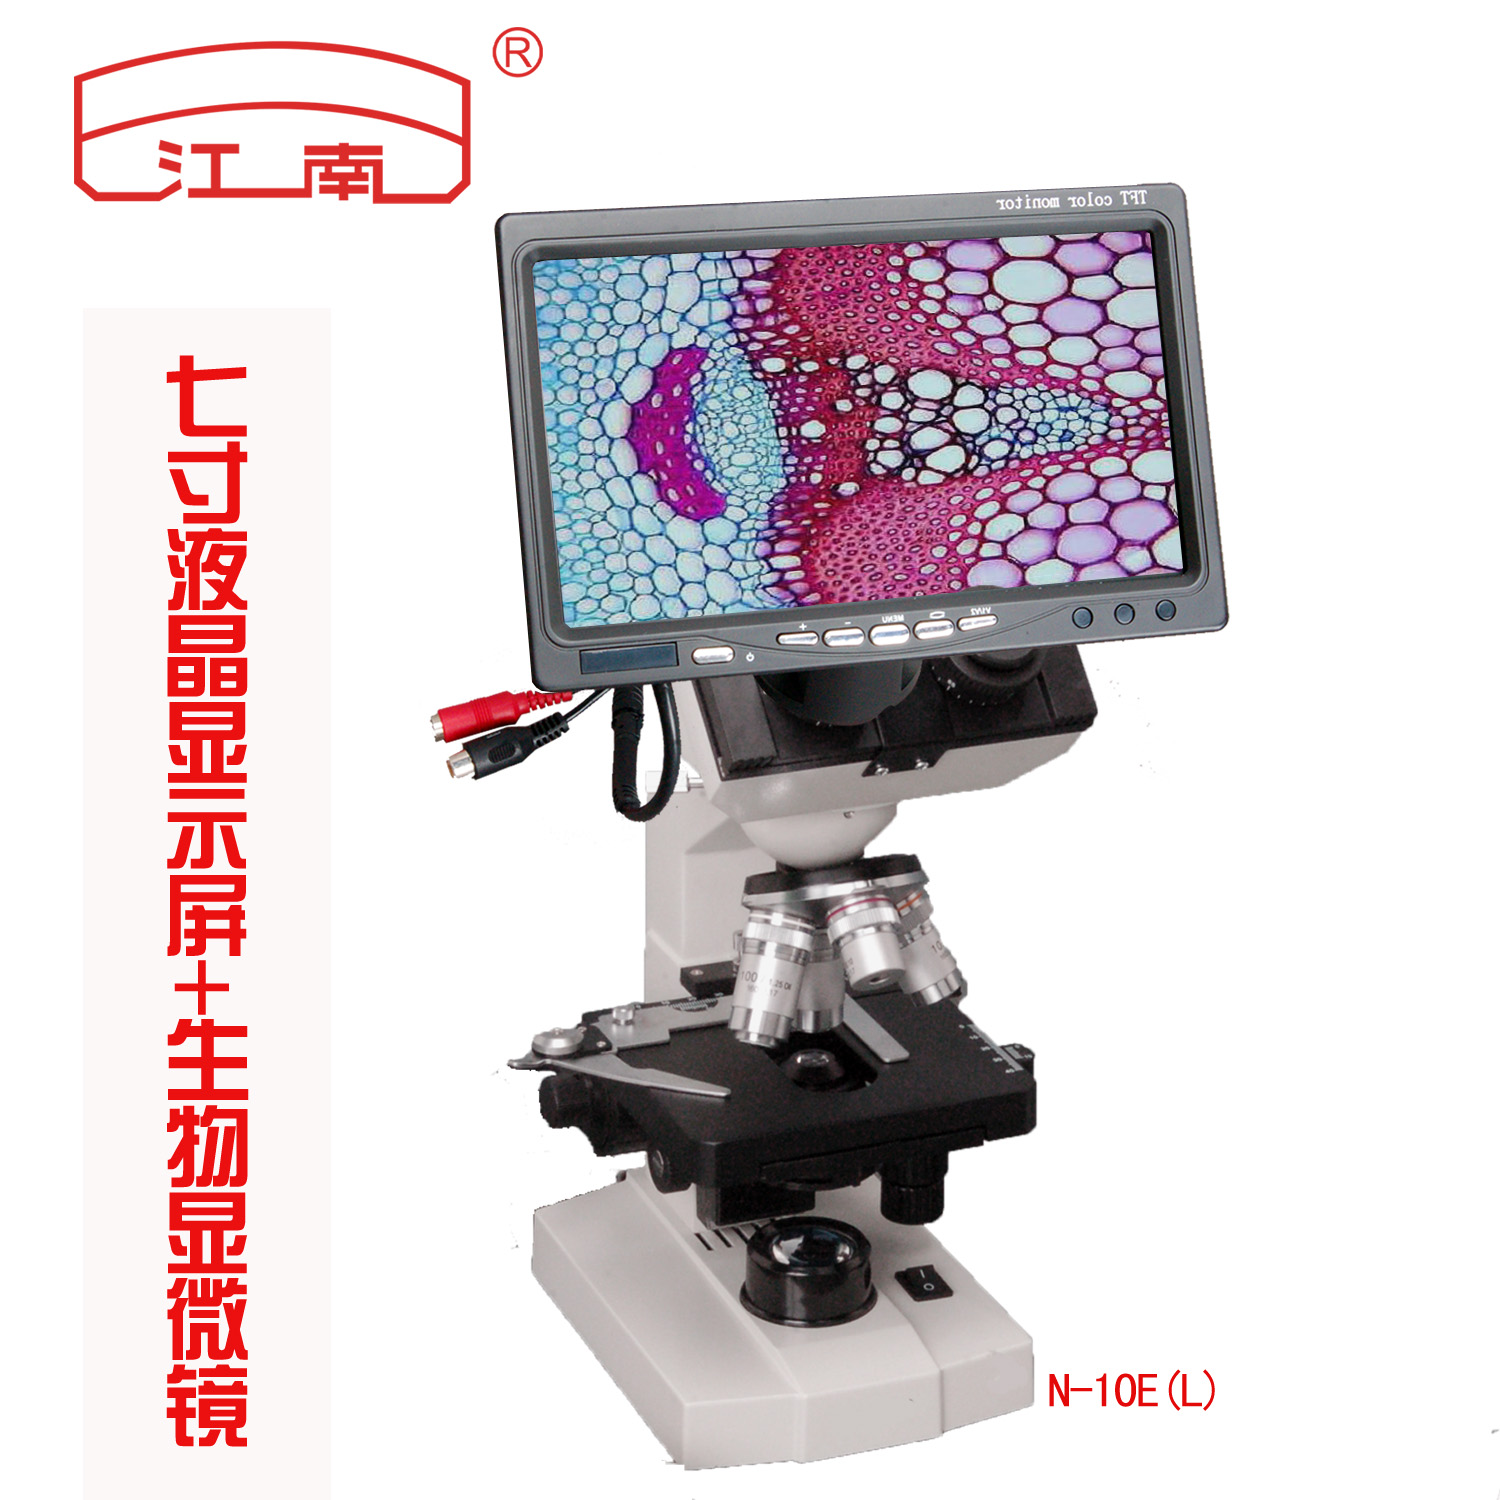 Professional biological microscope 7 inch display can be connected to a computer to tv aquaculture pet medical